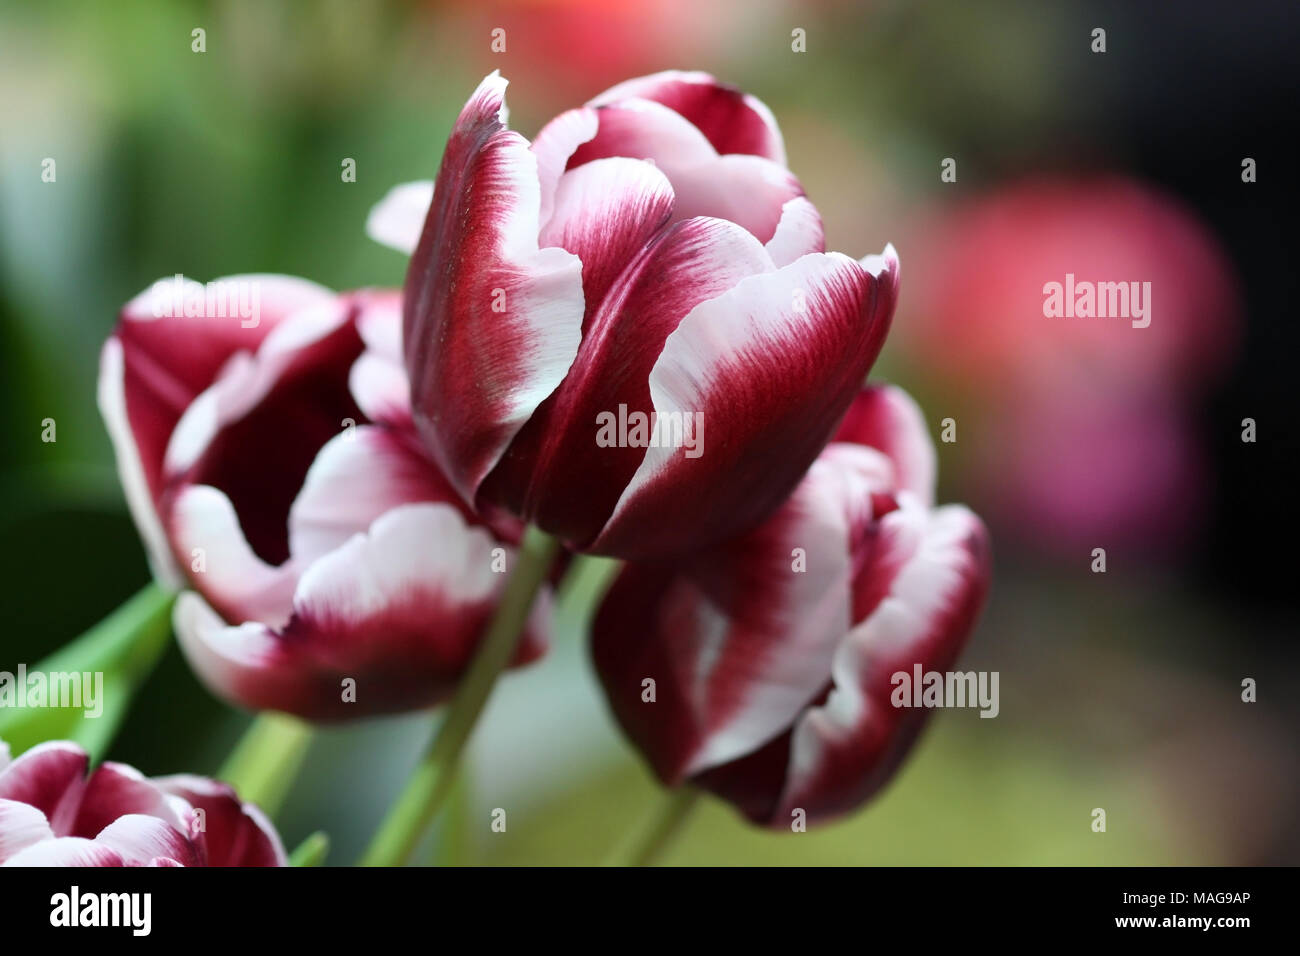 The tulips blossoming. A beautiful flower background with bright tulips horizontally. - Stock Image